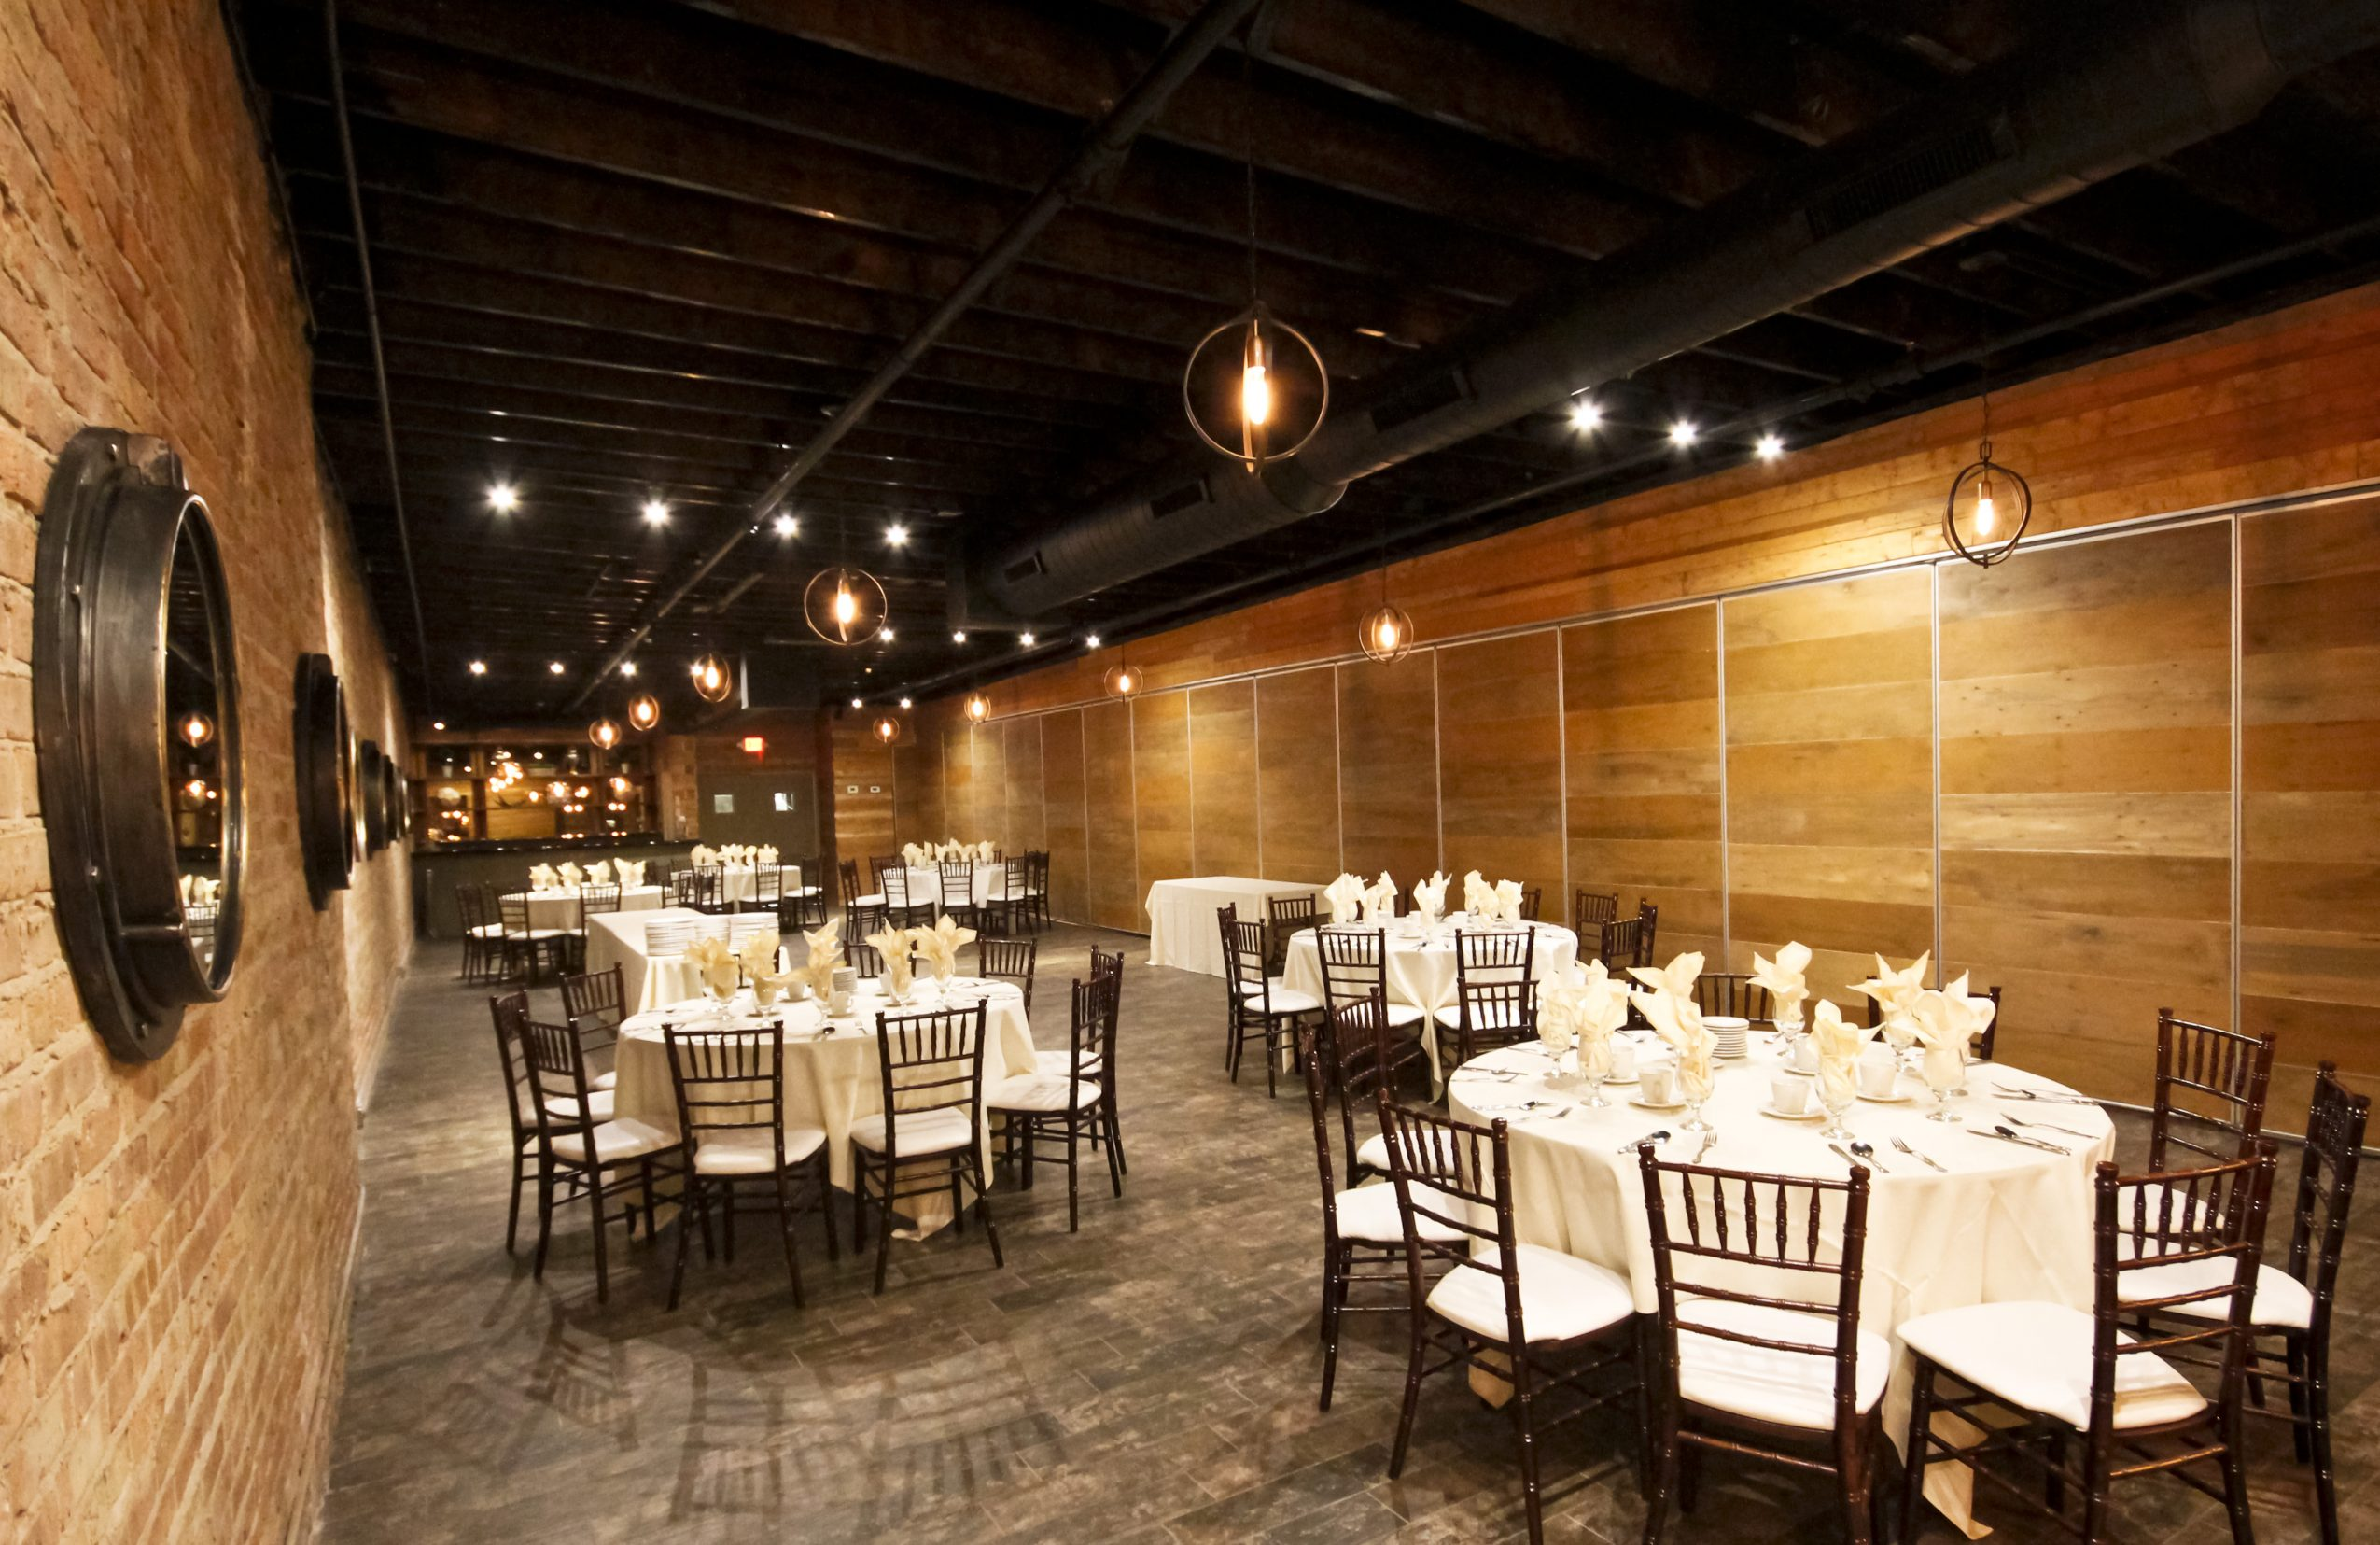 Cucina Biagio Hours Meet Jodi Curry Of Biagio Events Catering Voyage Chicago